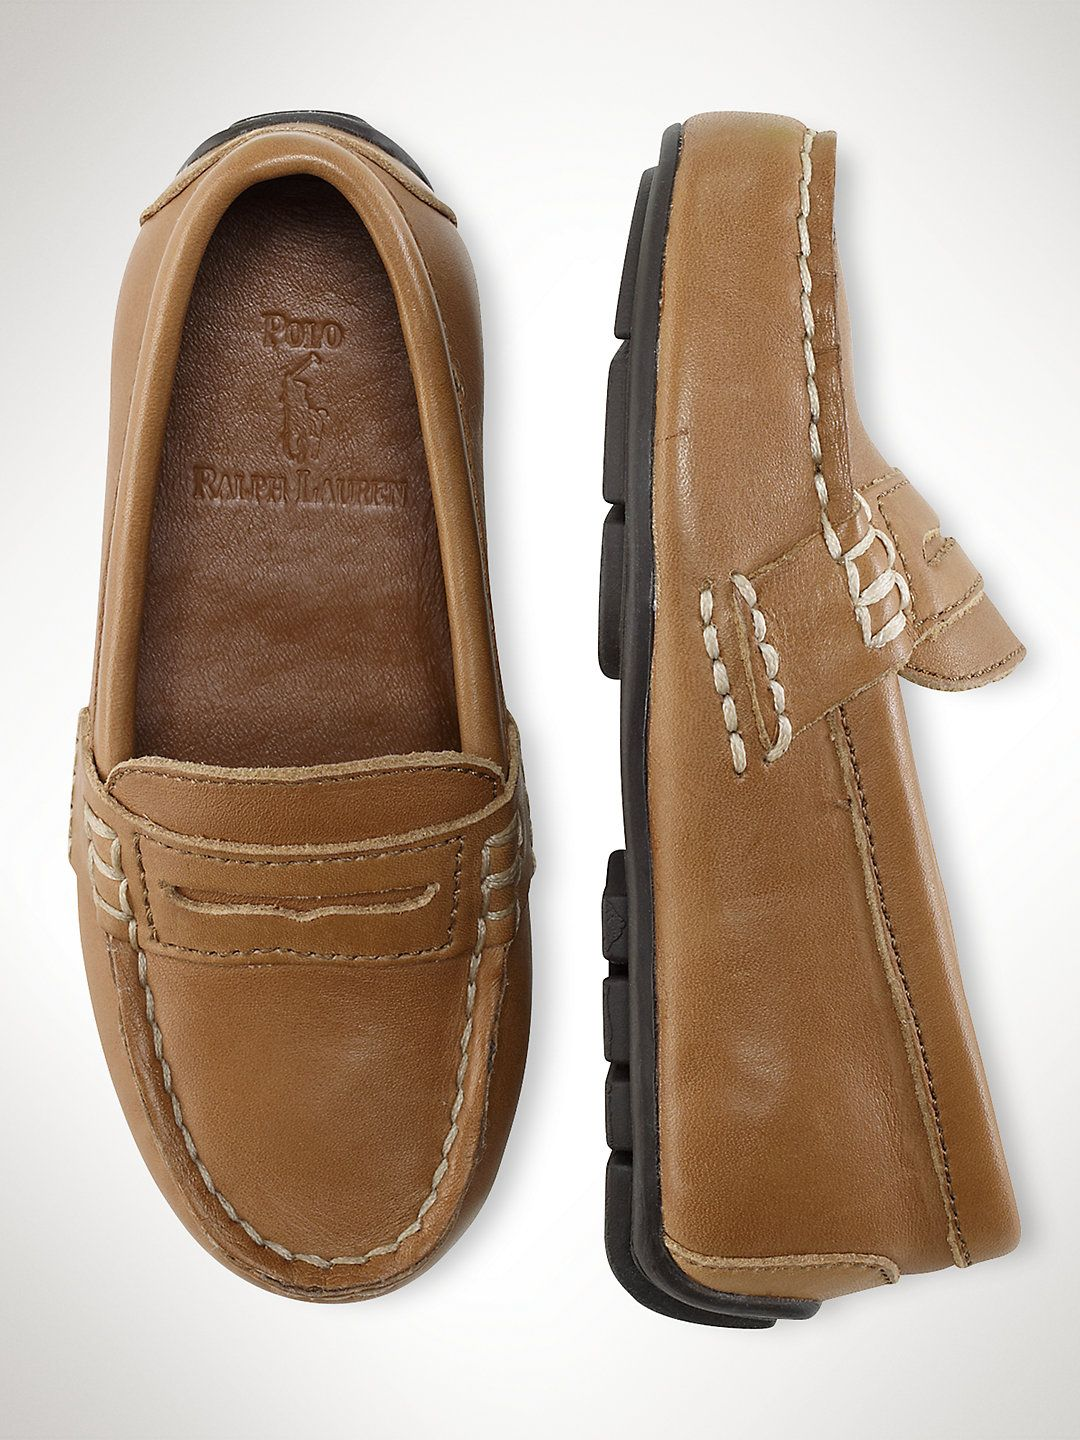 dbe72d246b1 Telly Penny Loafer - Toddler 4-10 Shoes - RalphLauren.com